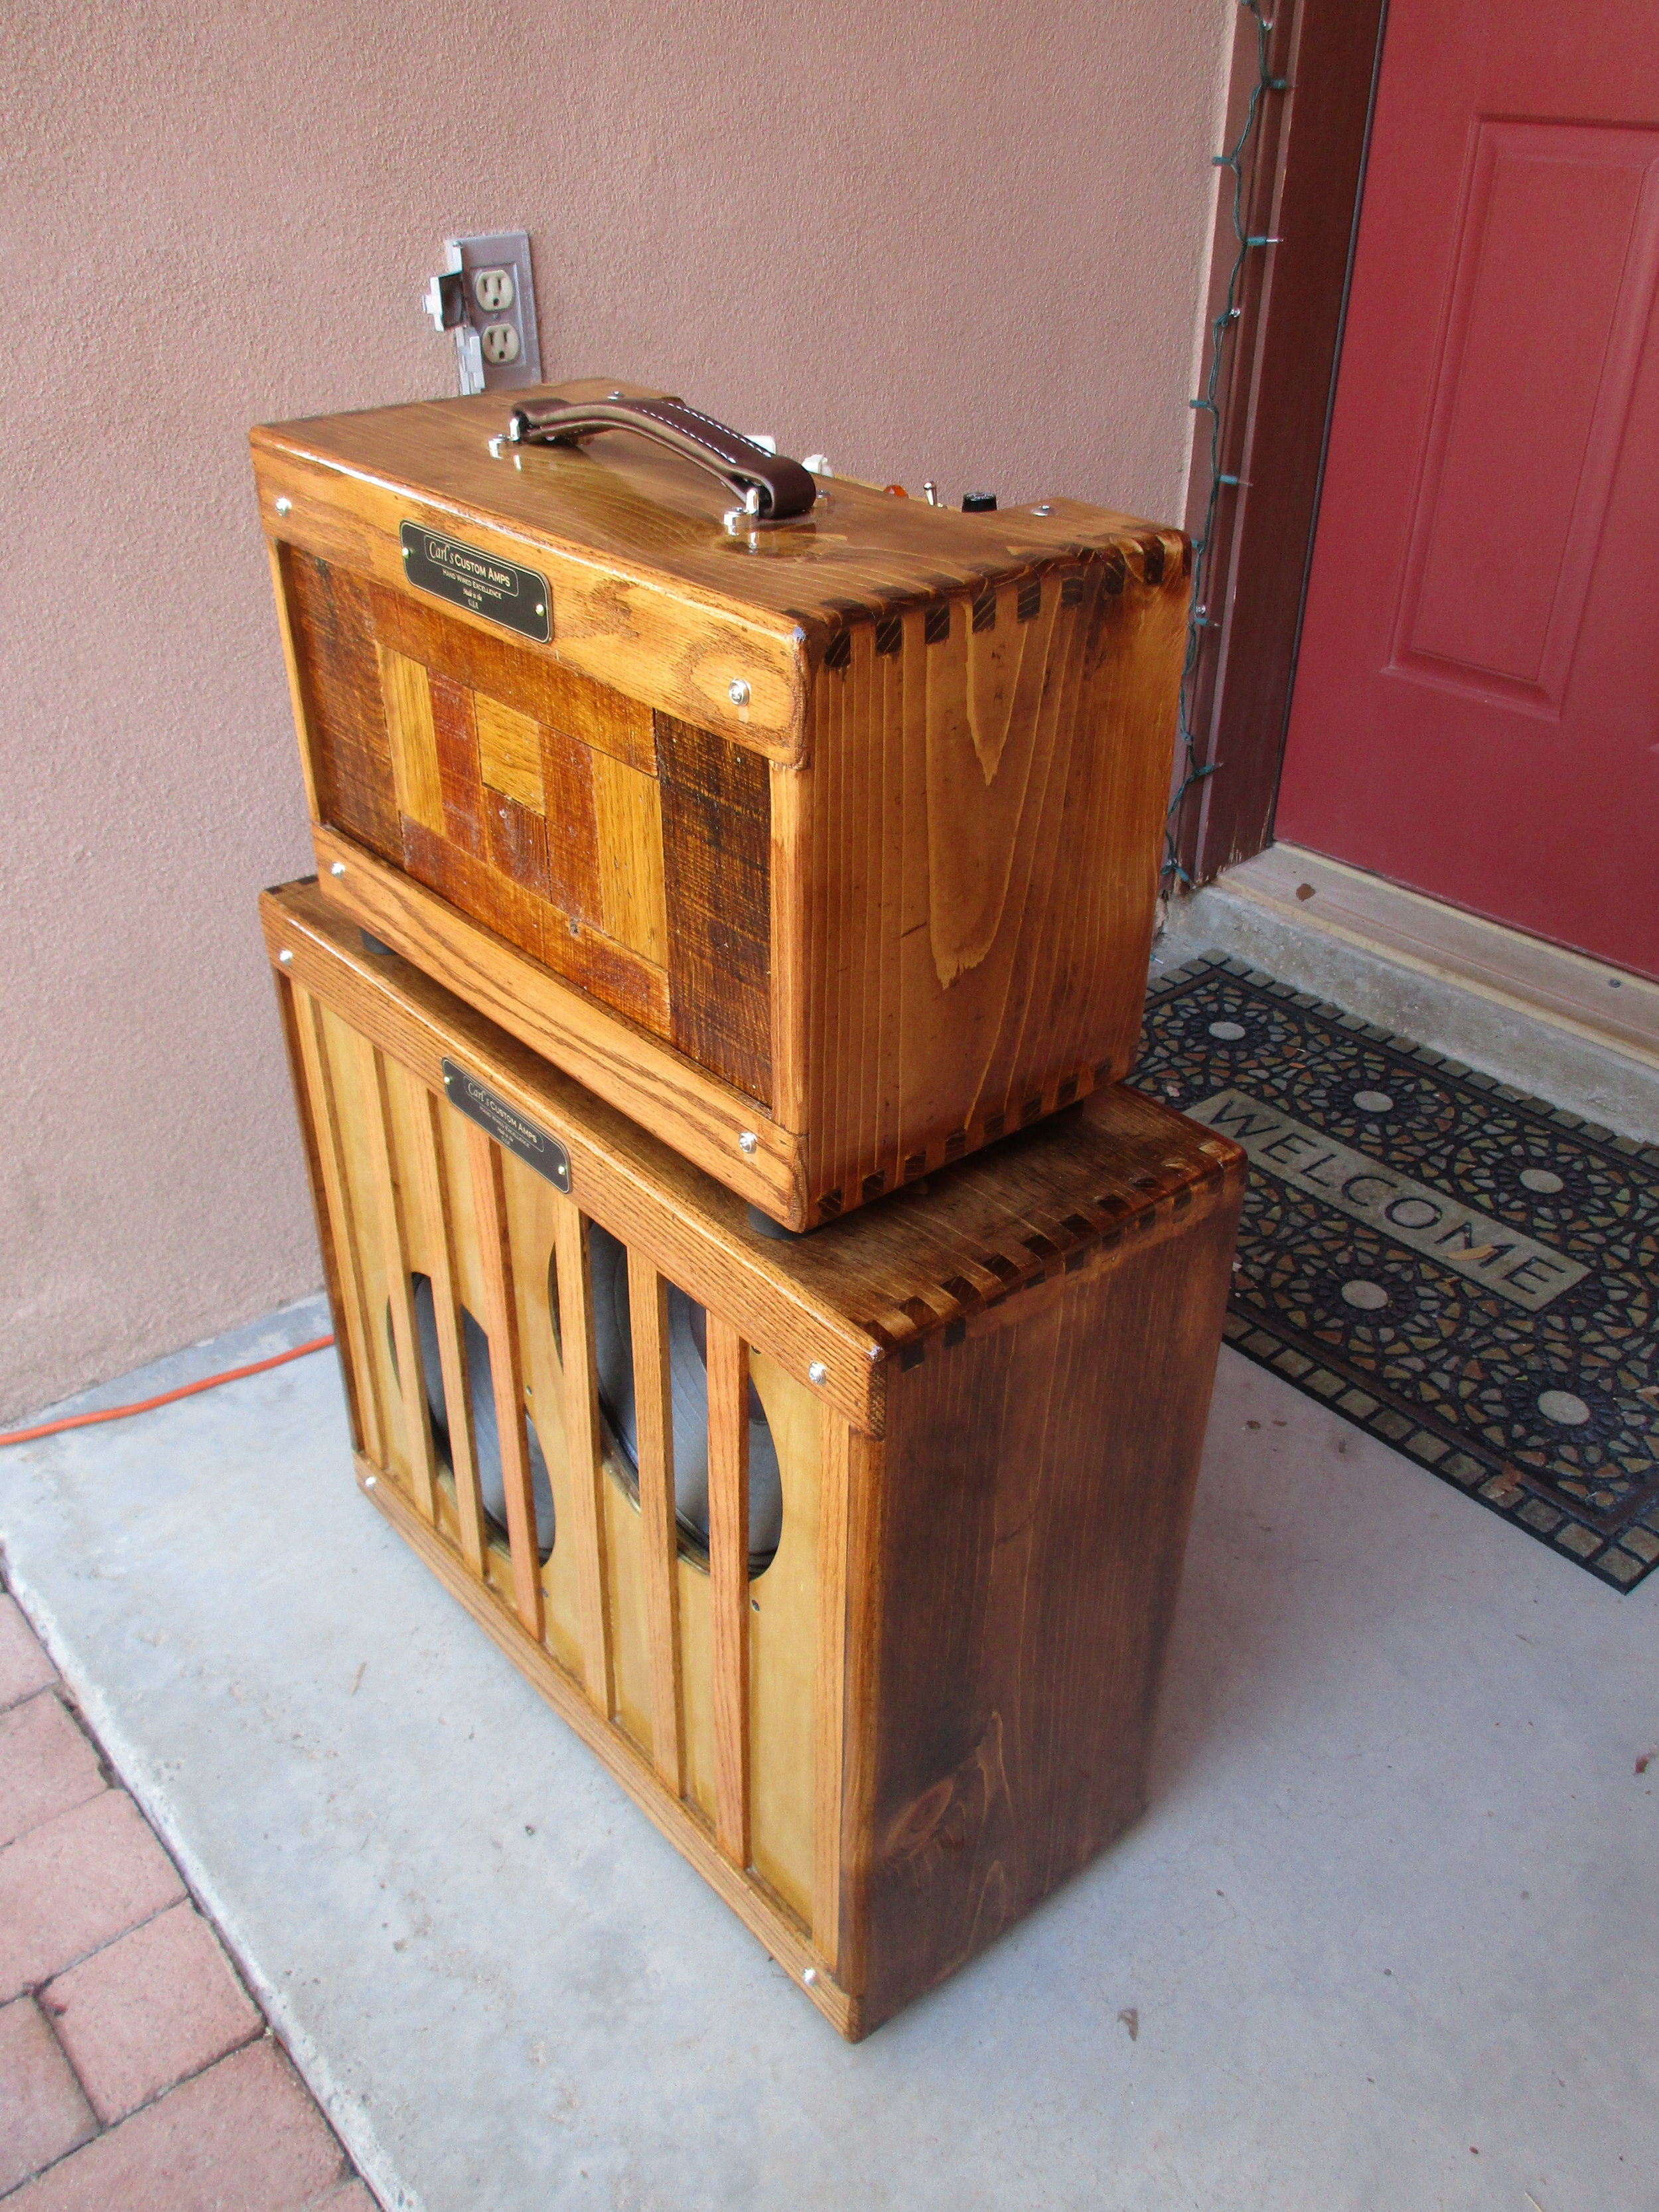 This one was really fun to build. I did for long time customer and friend. It's my Octal Princeton but with fancy hand finished cab made of pine and oak. The front pieces on the head are salvaged from pallets. The 2x10 cab is loaded with Weber DT10s. In keeping with the look I made the baffle with oak strips as cone protector rather than grill cloth. The finish was 15 coats of a wipe on varnish I mixed up. Lots of work but I'm pleased with the result!